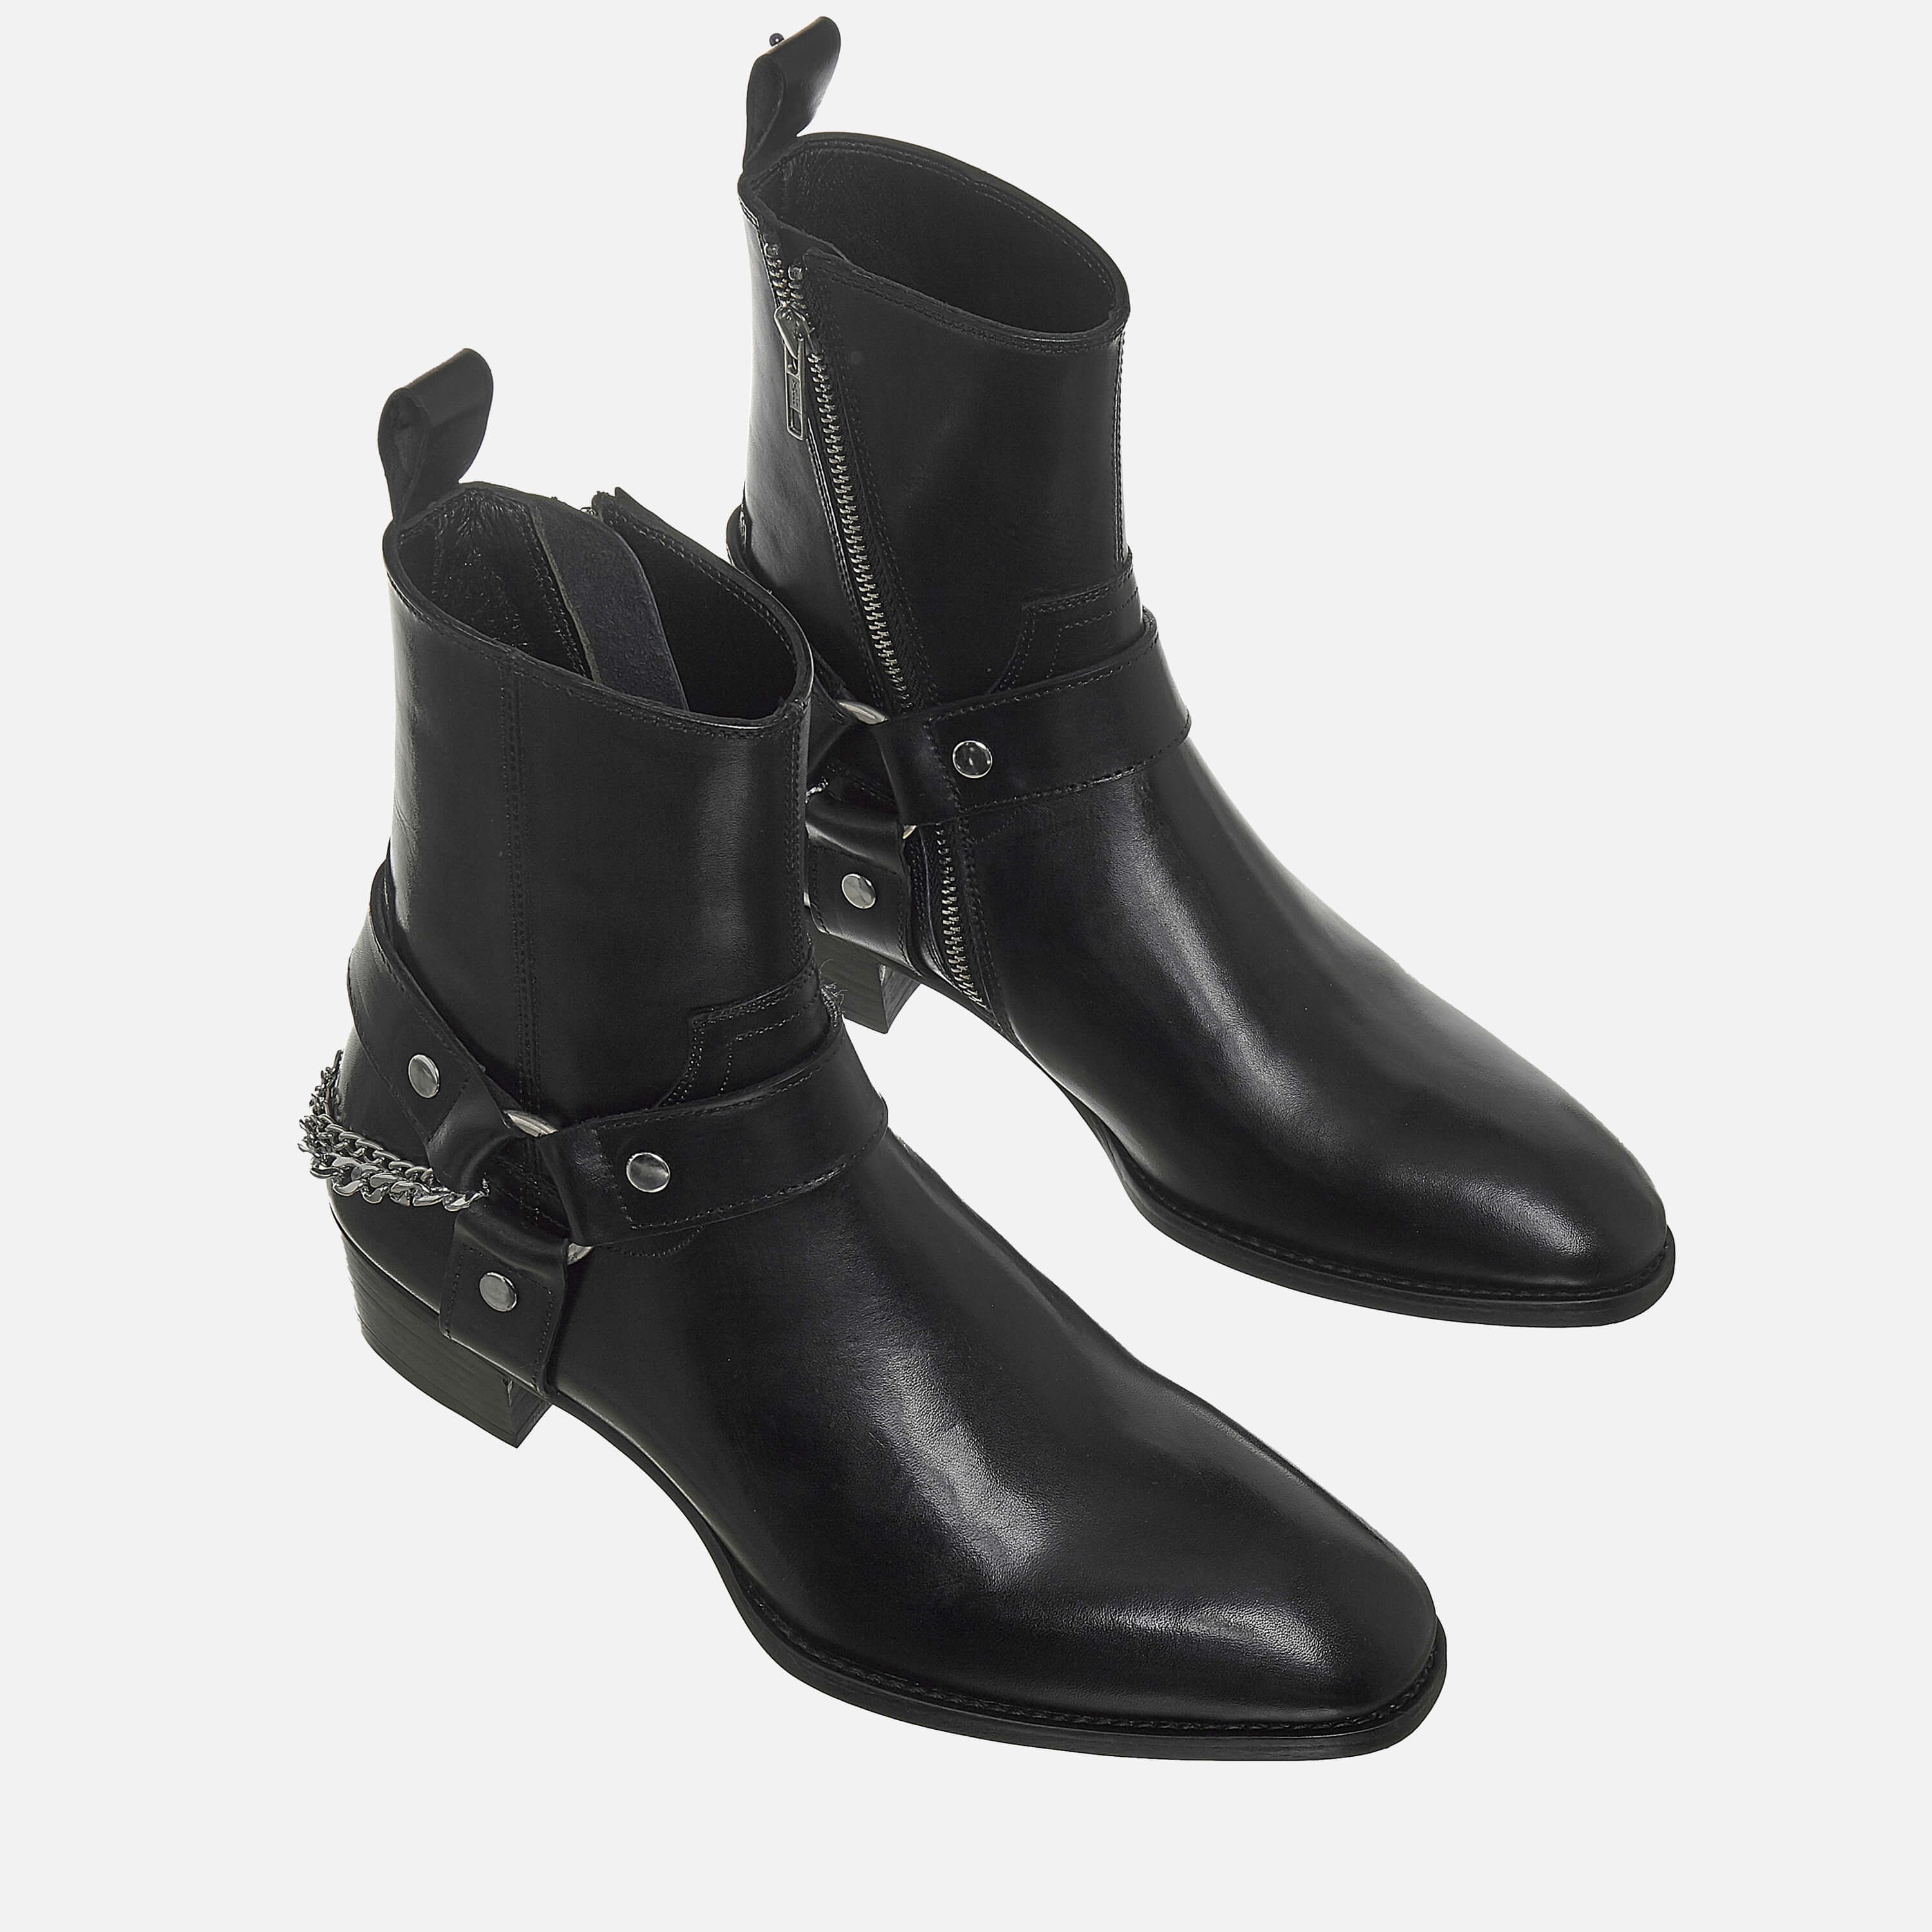 Chain x Harness Boots In Black Chain x Harness Boots In Black SS2020 4